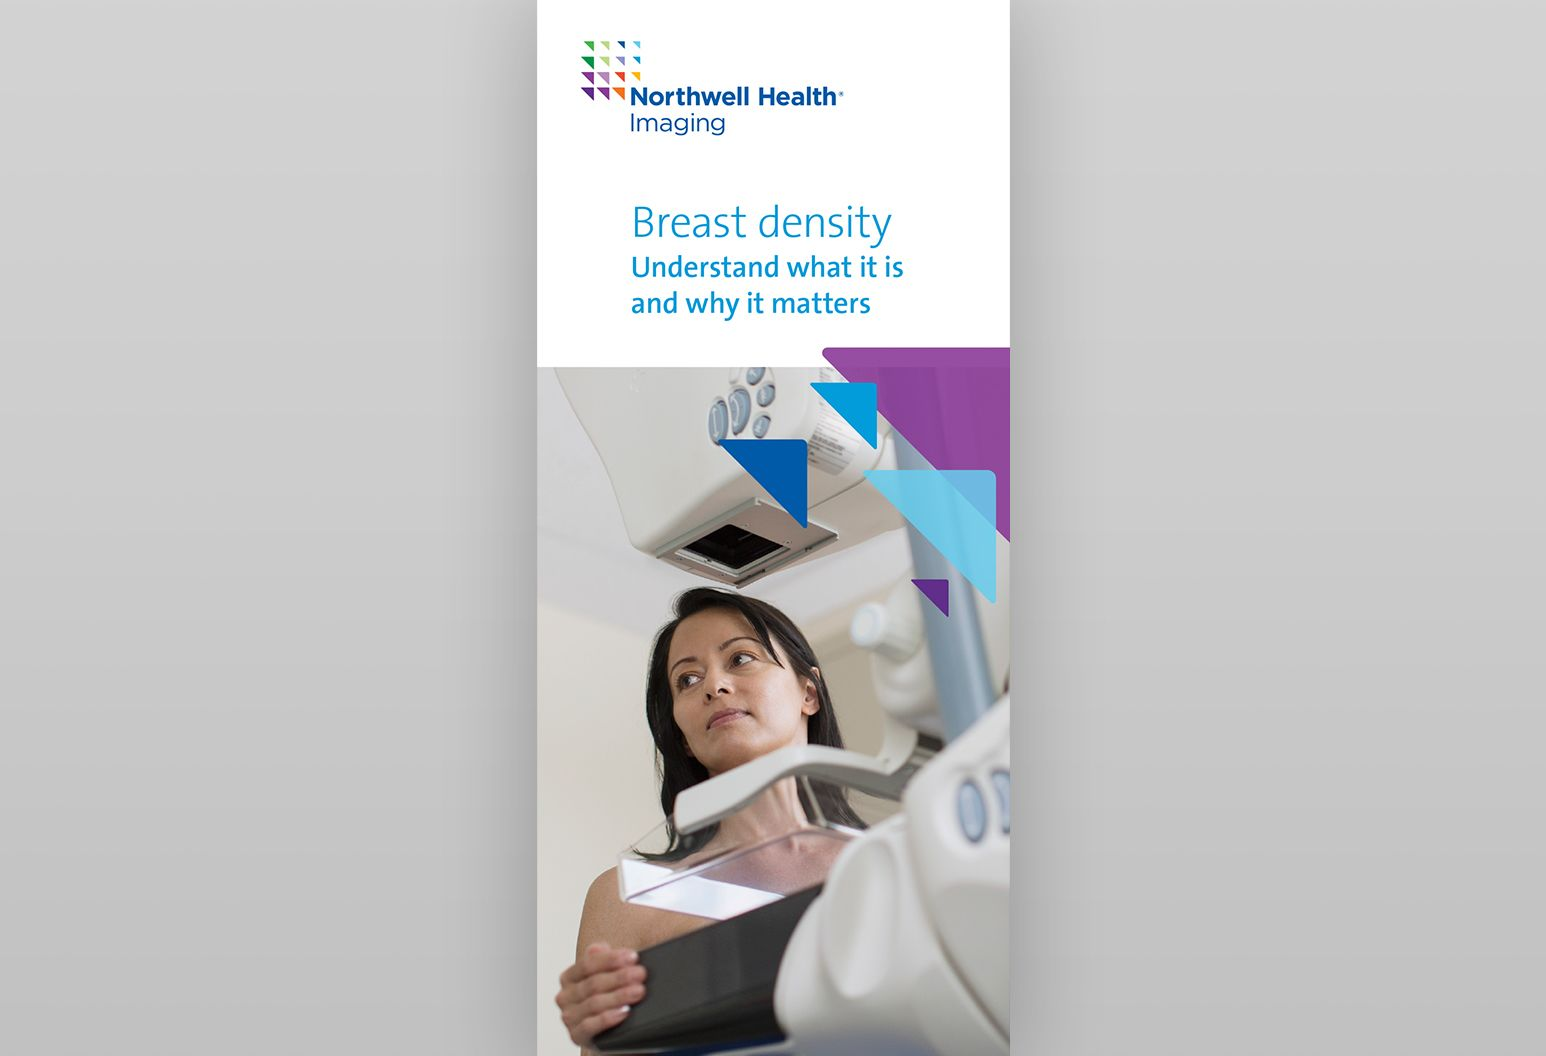 Cover of the brochure to learn more about breast density at Northwell Health.